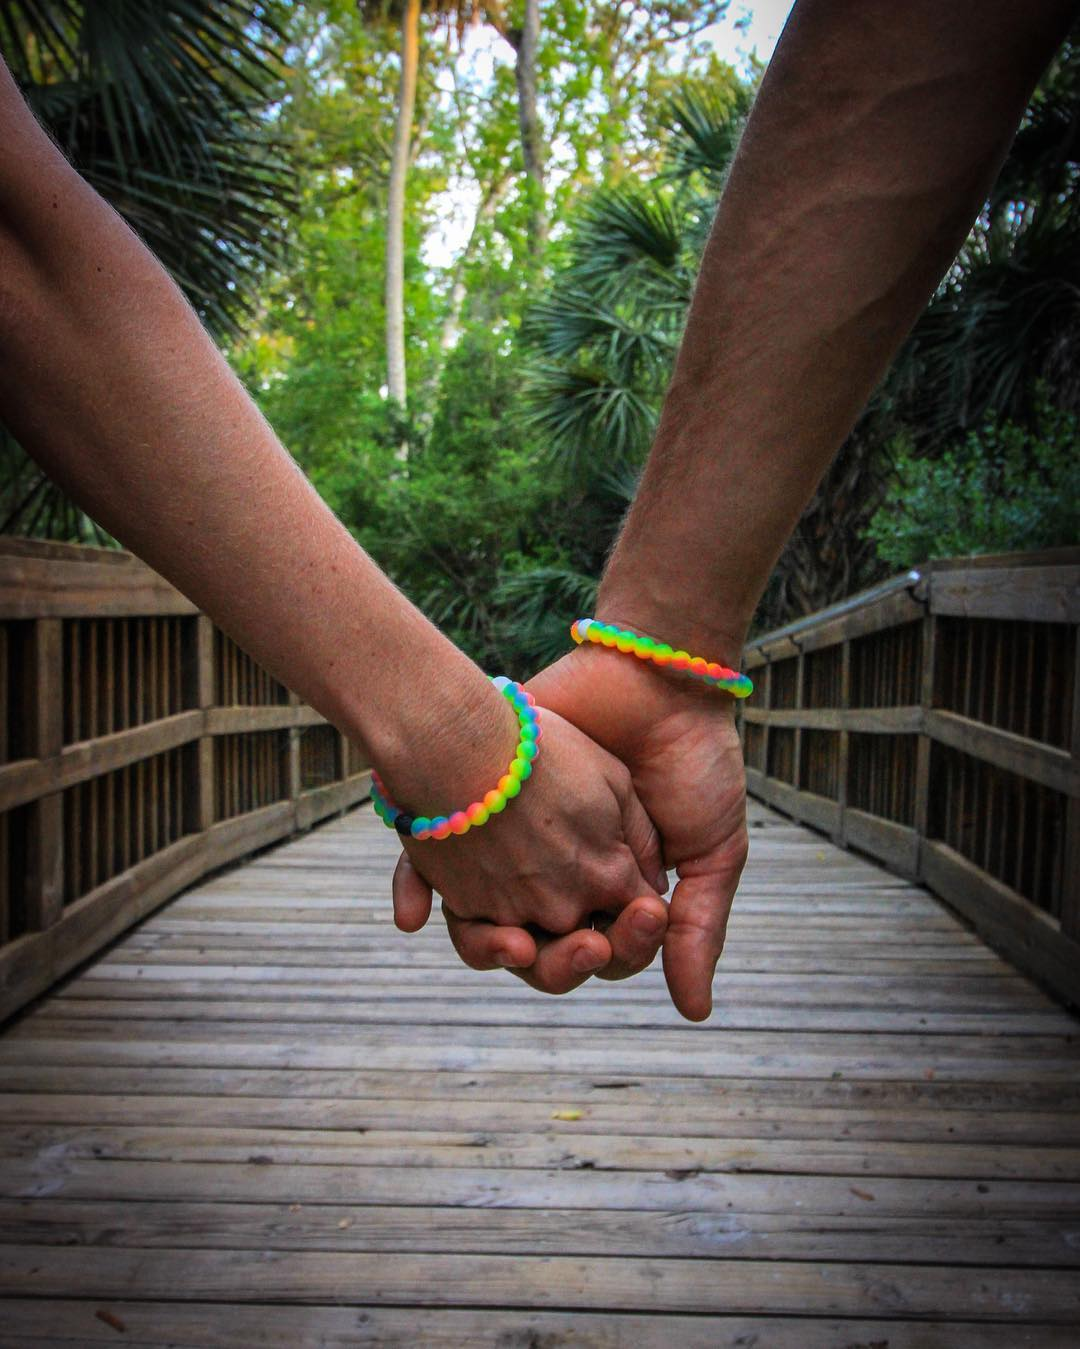 Grab a friend and double your impact #livelokai